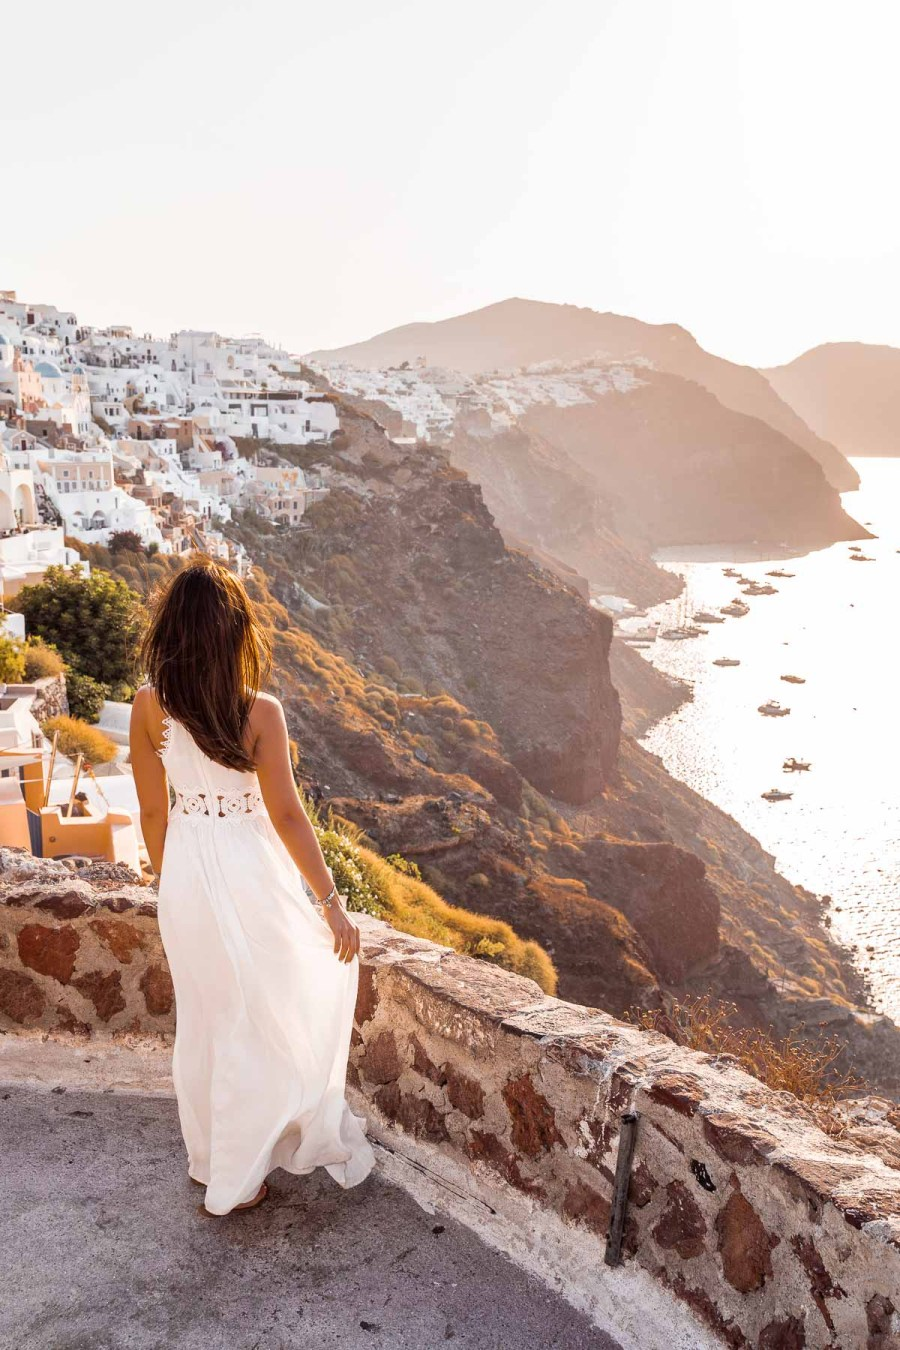 Girl in a white dress standing in the Oia Castle, looking at the view of the caldera at sunrise